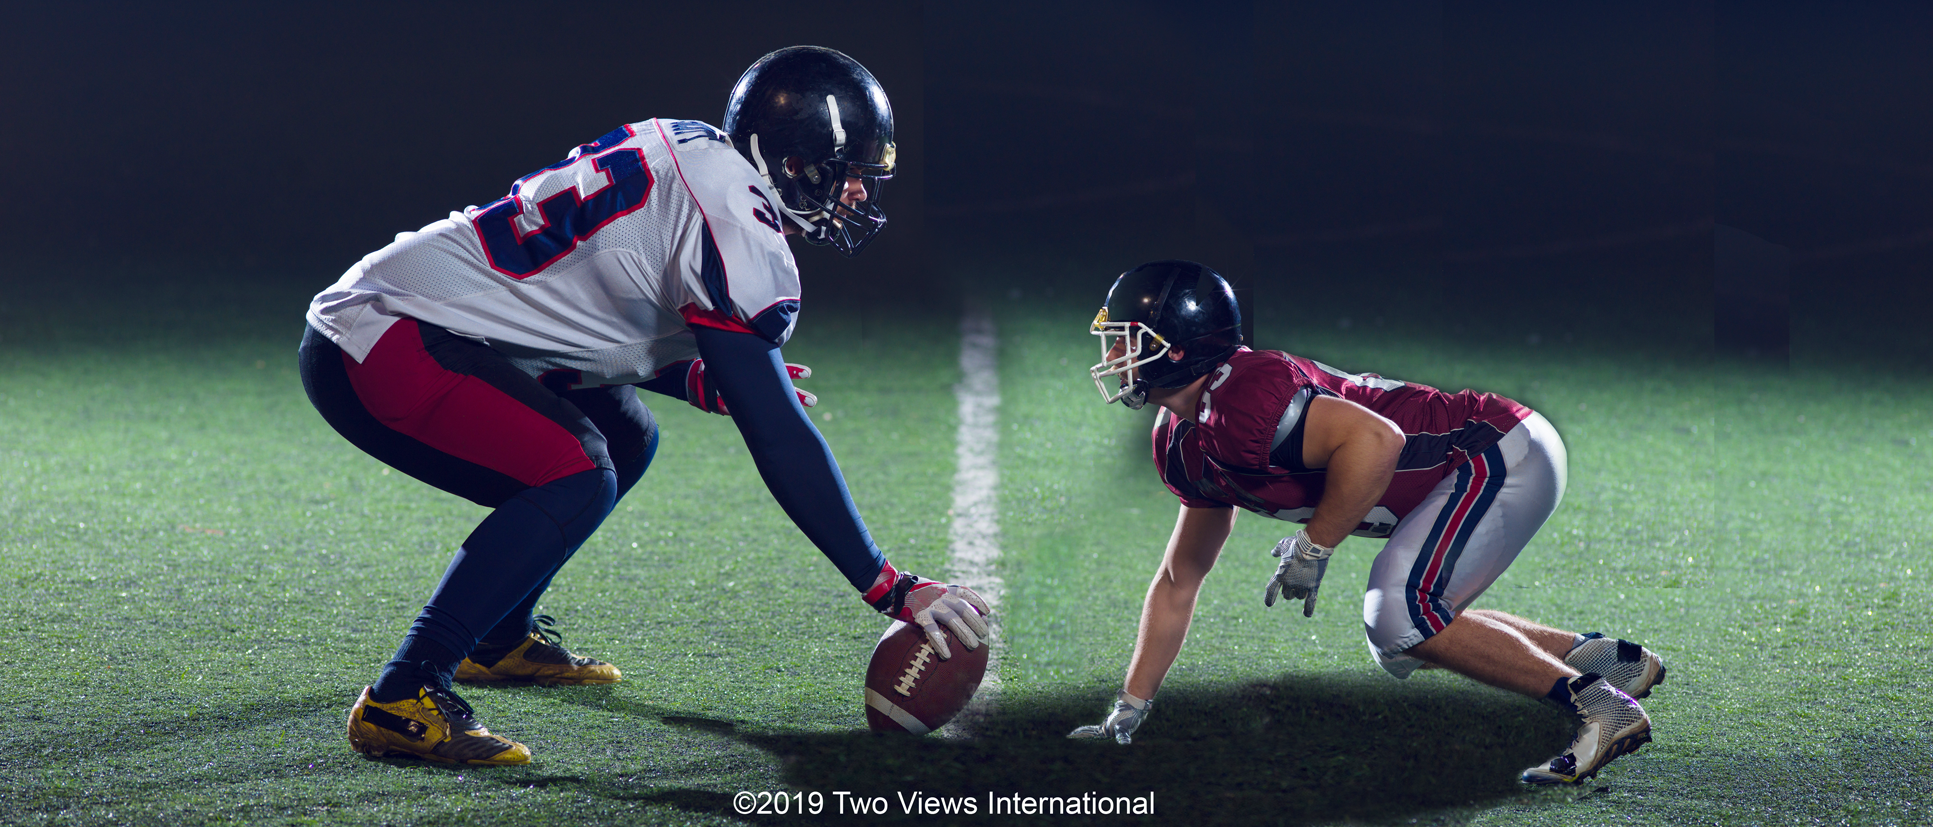 Big and small football players demonstrate an Underdog in a Negotiation